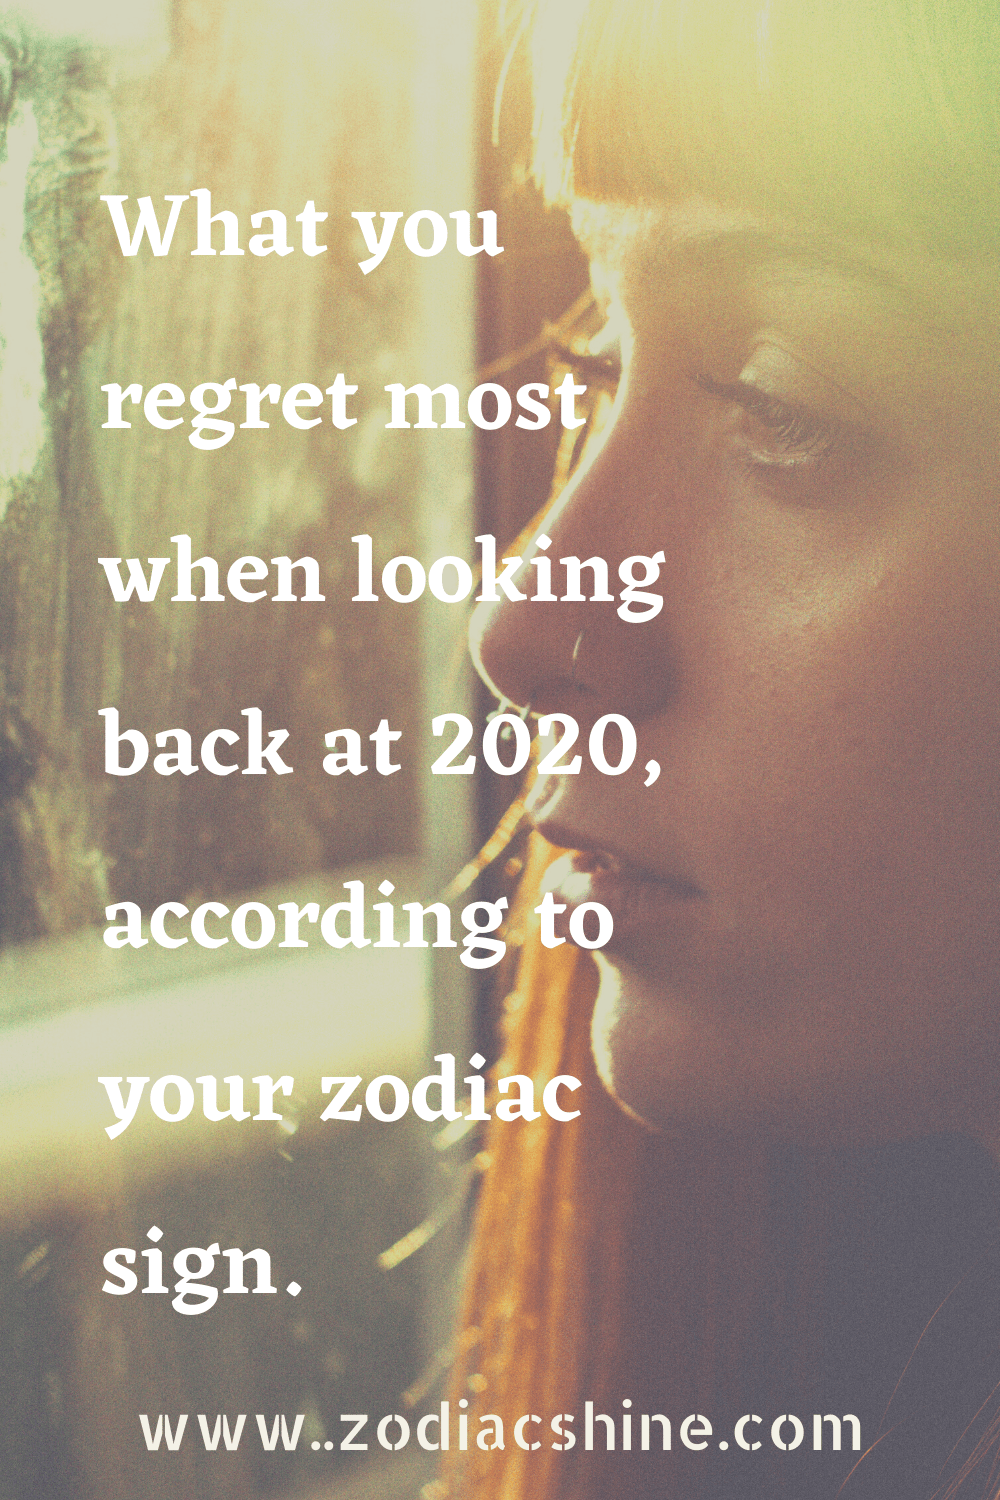 What you regret most when looking back at 2020, according to your zodiac sign.